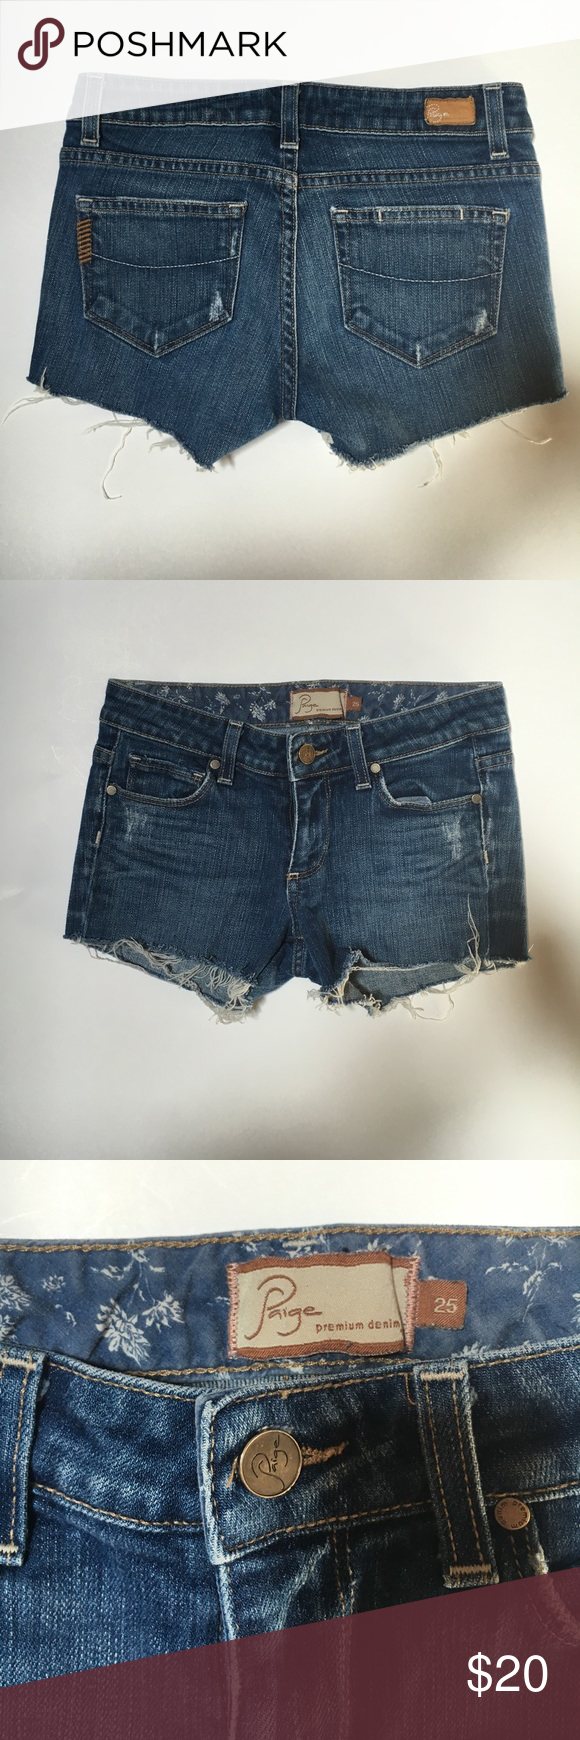 PAIGE CUTOFF JEAN SHORTS Paige cutoff jean shorts, size 25, as you can see in photos, I turned my pants into shorts...you could hem them if you don't like that frayed look. Paige Jeans Shorts Jean Shorts